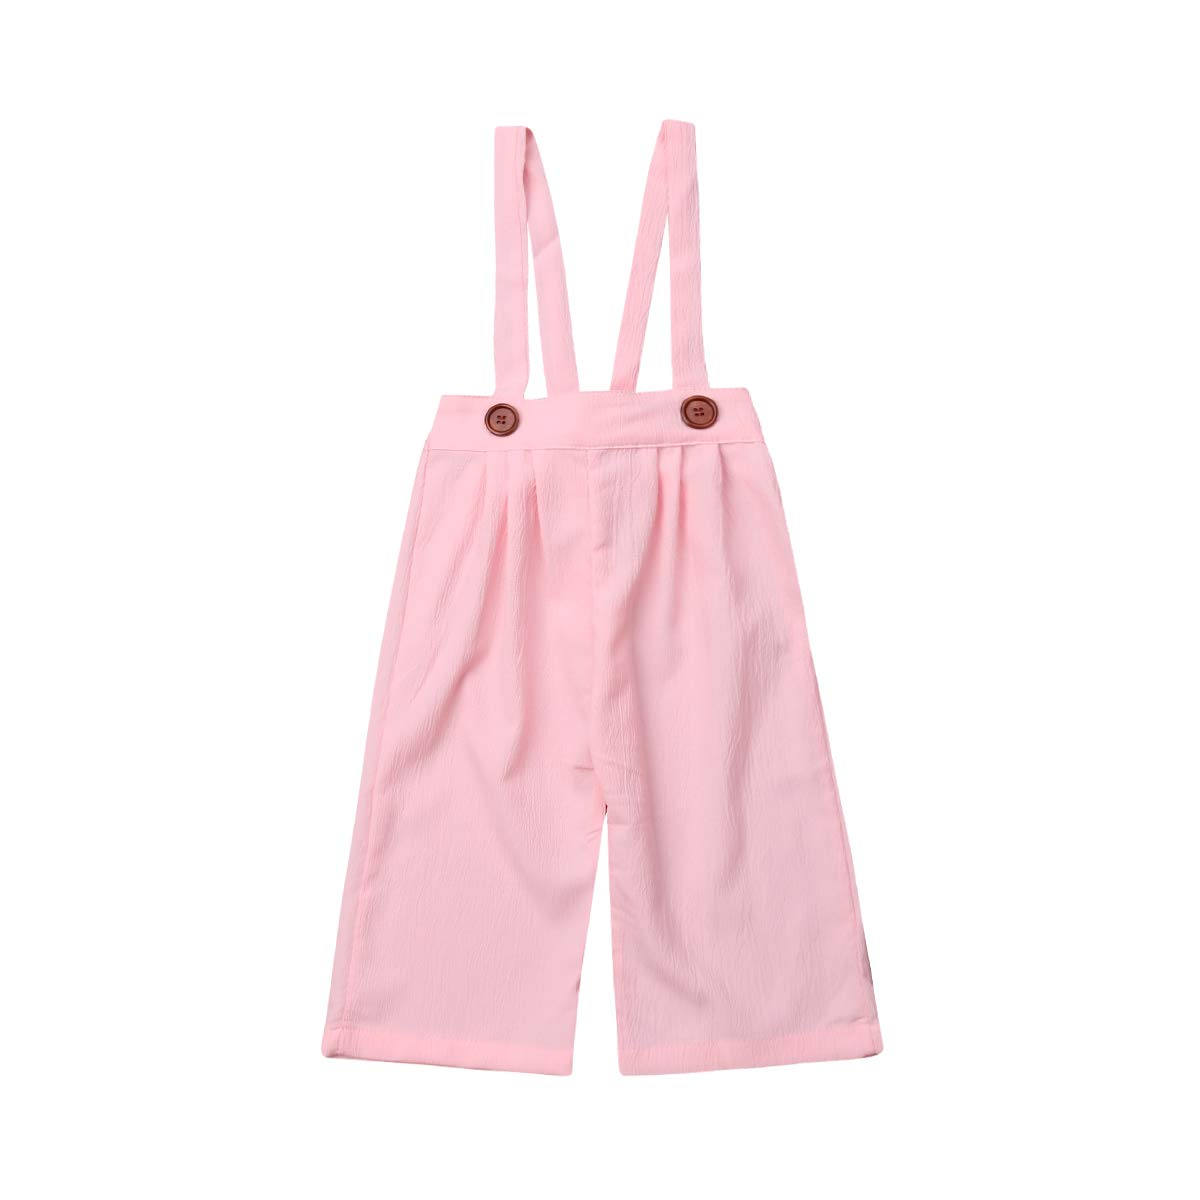 FUFUCAILLM Girl Toddler Clothes Chiffon Suspender Pants Overall Bottom Flared Summer Casual Trousers